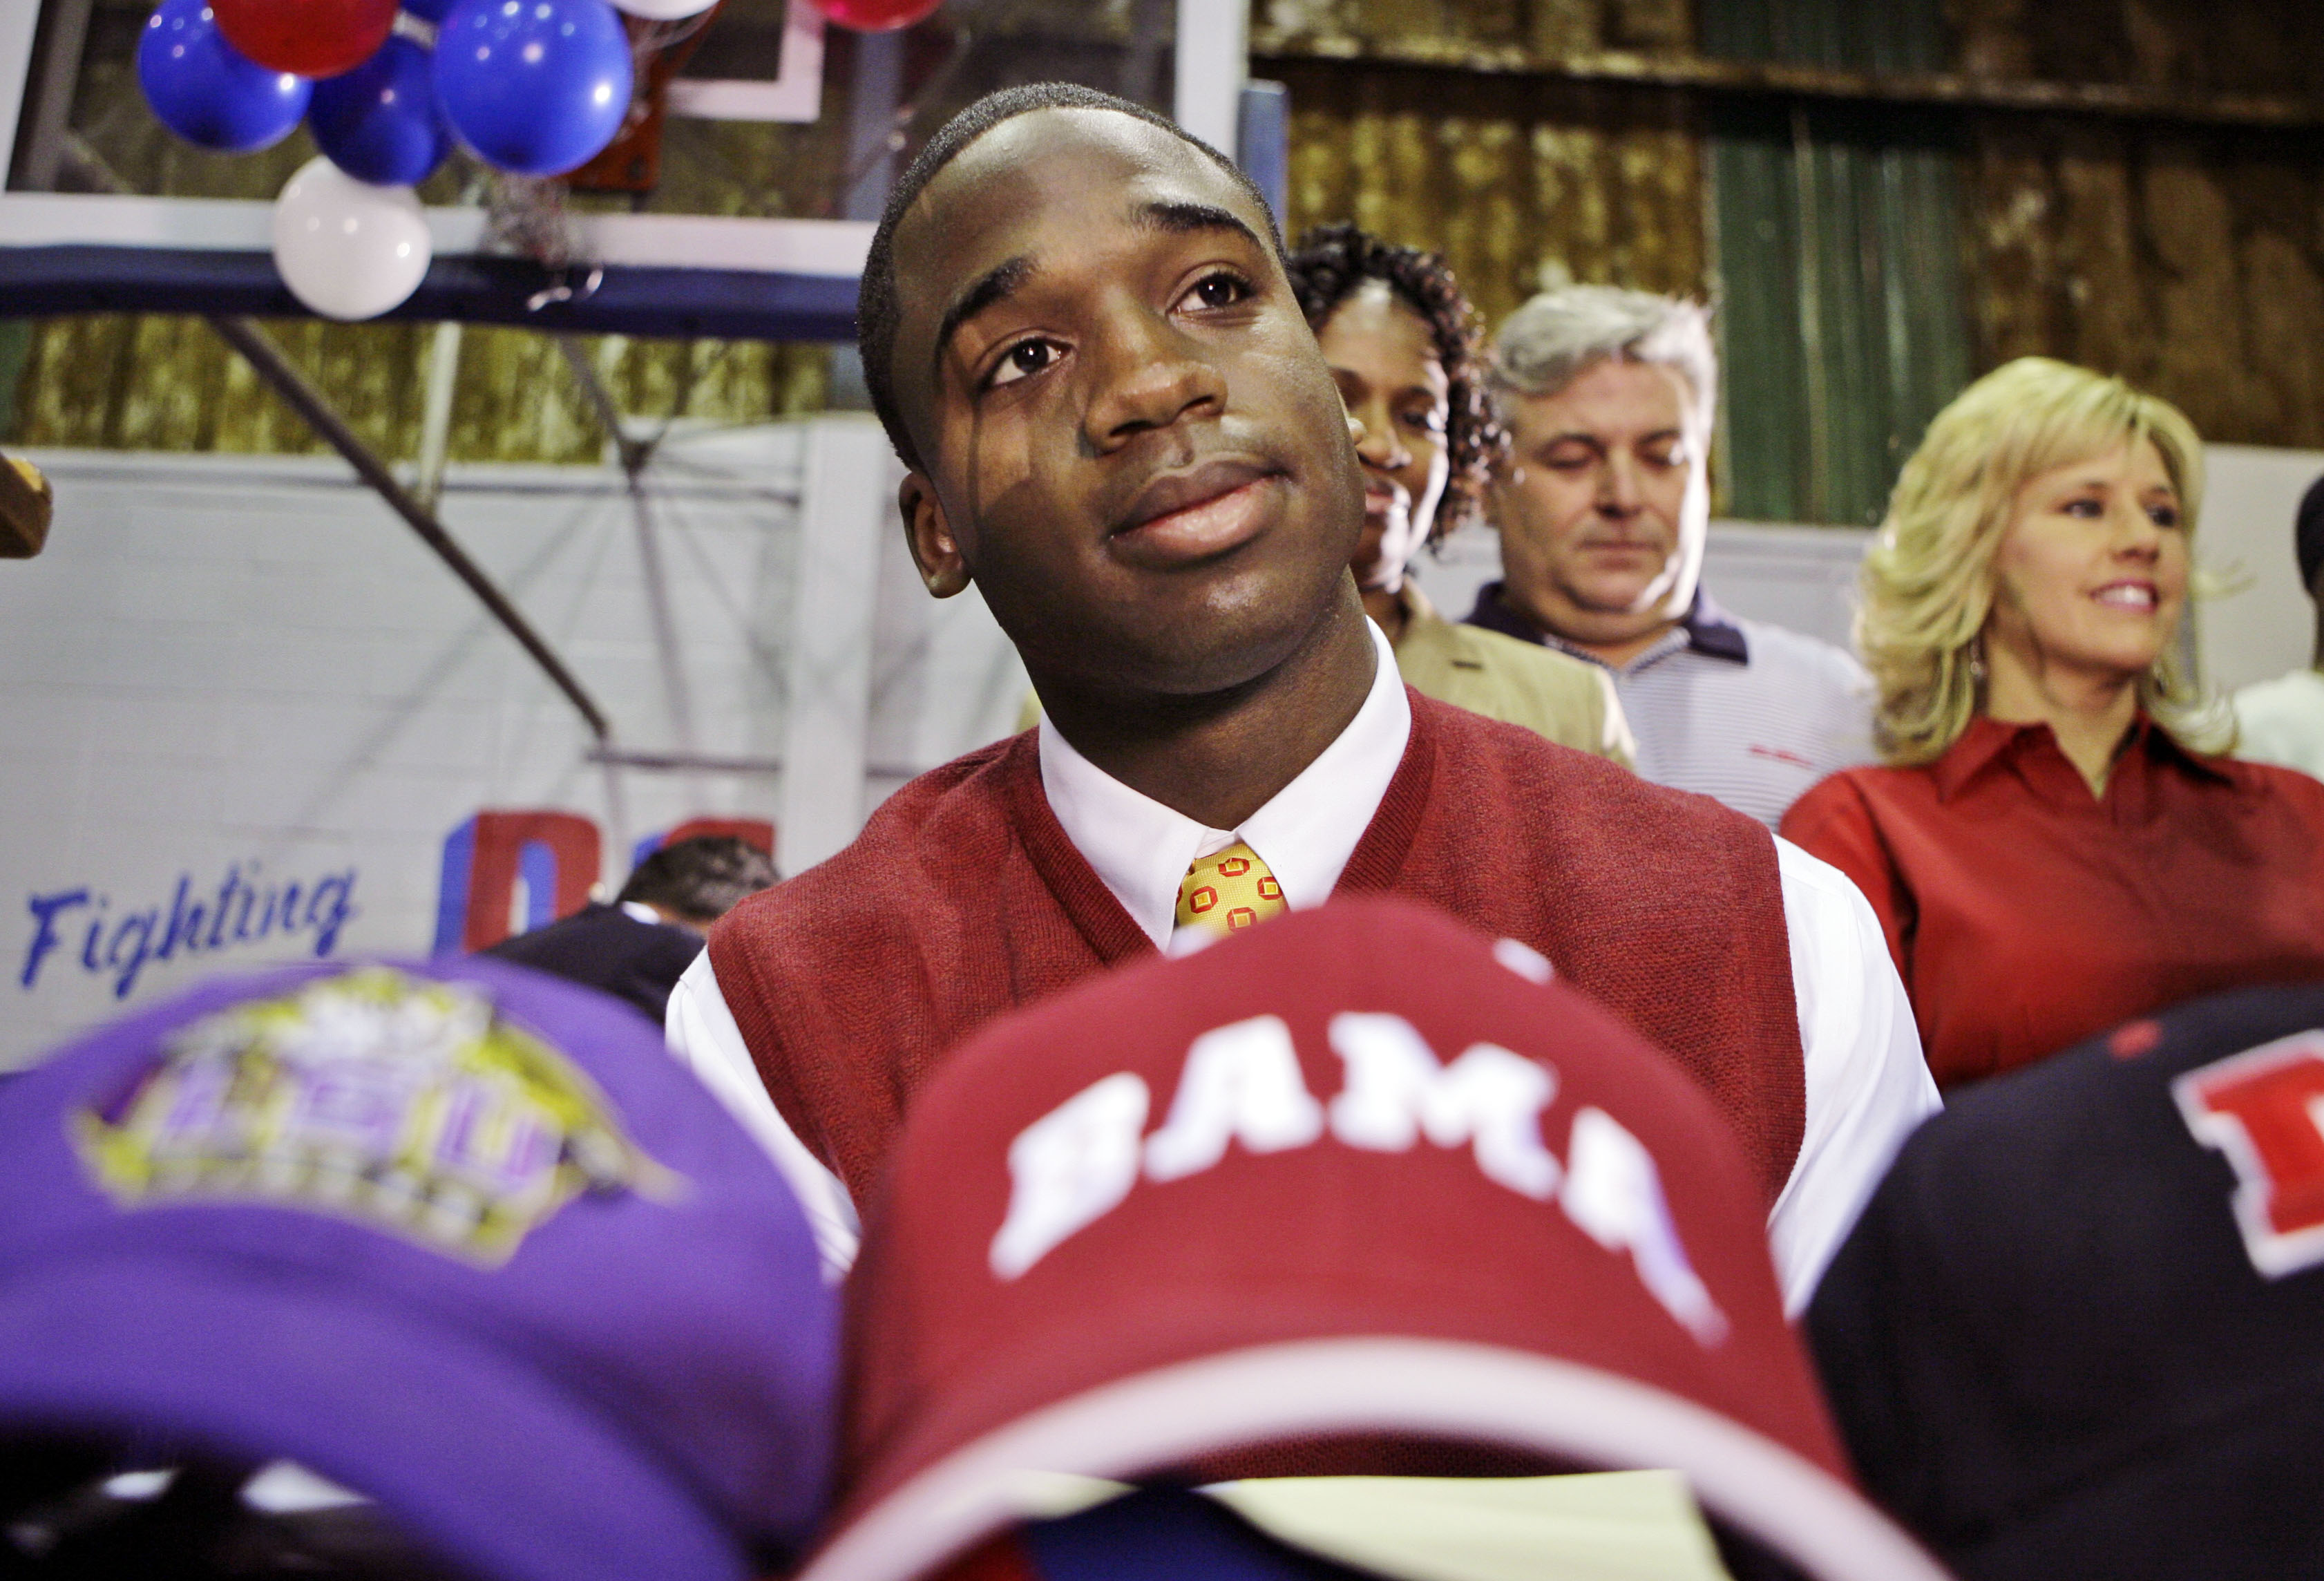 John Curtis High School senior Joe McKnight pauses before the ceremony where he signs a letter of intent to attend Southern California, in River Ridge, La., Wednesday, Feb. 7, 2007. (AP Photo/Alex Brandon) ORG XMIT: LAAB104